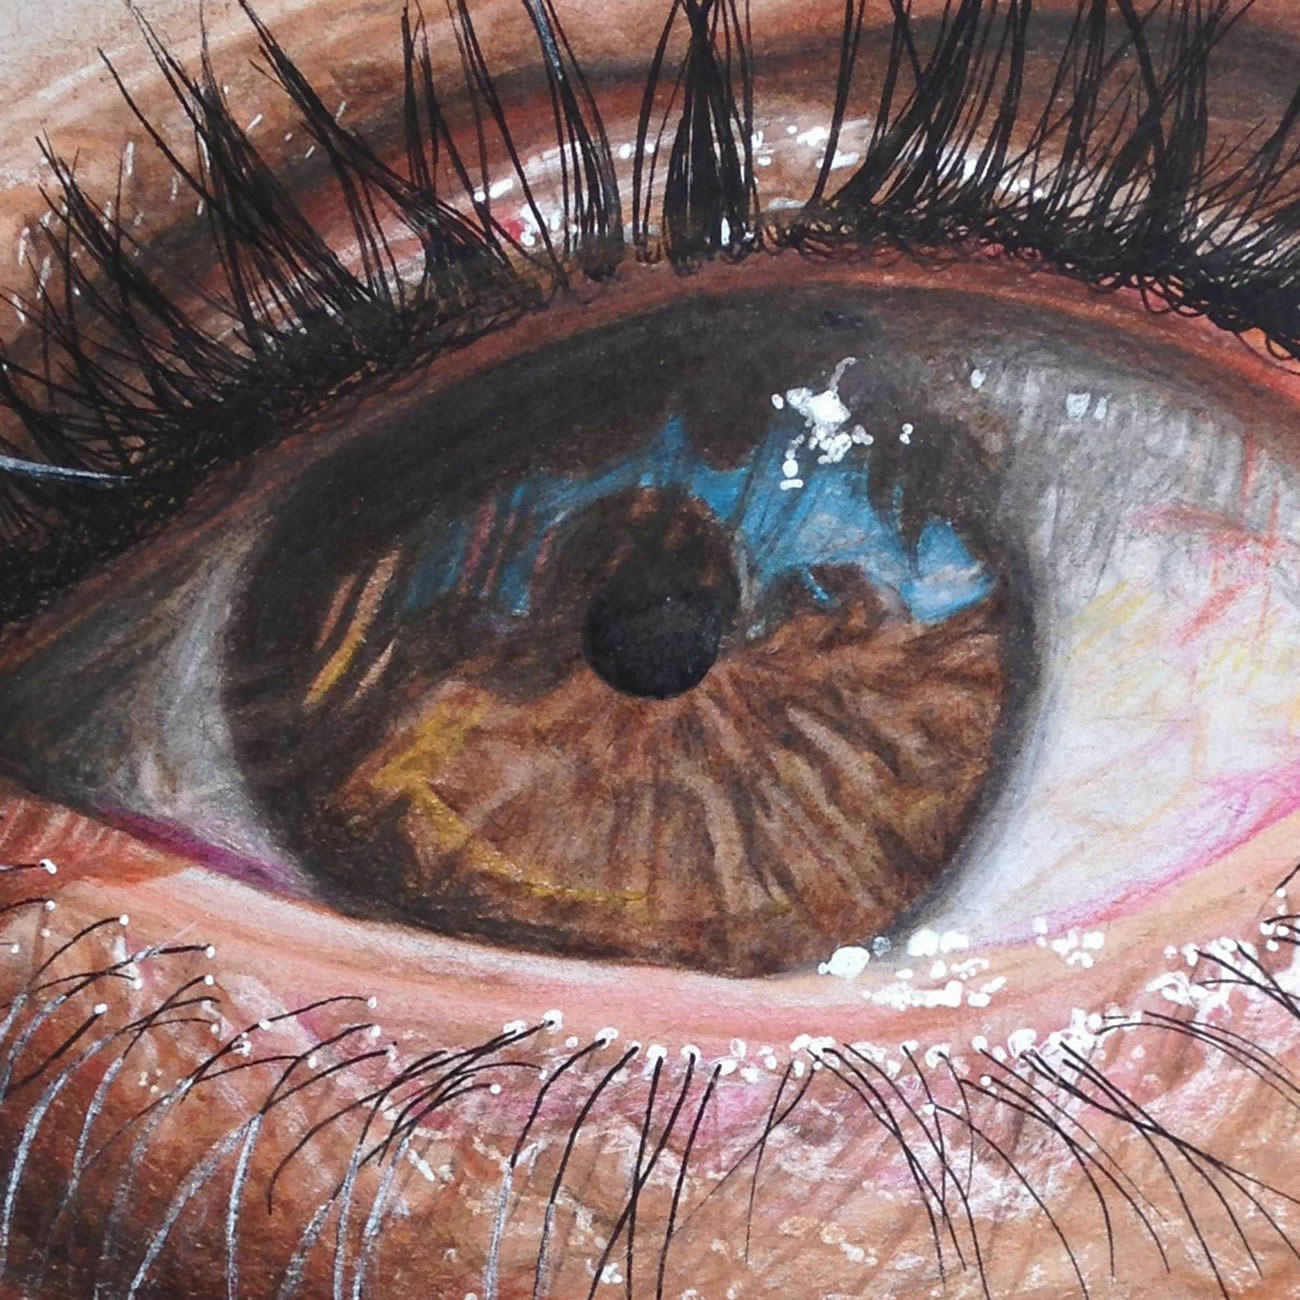 dark brown eye, realistic drawing by Redosking